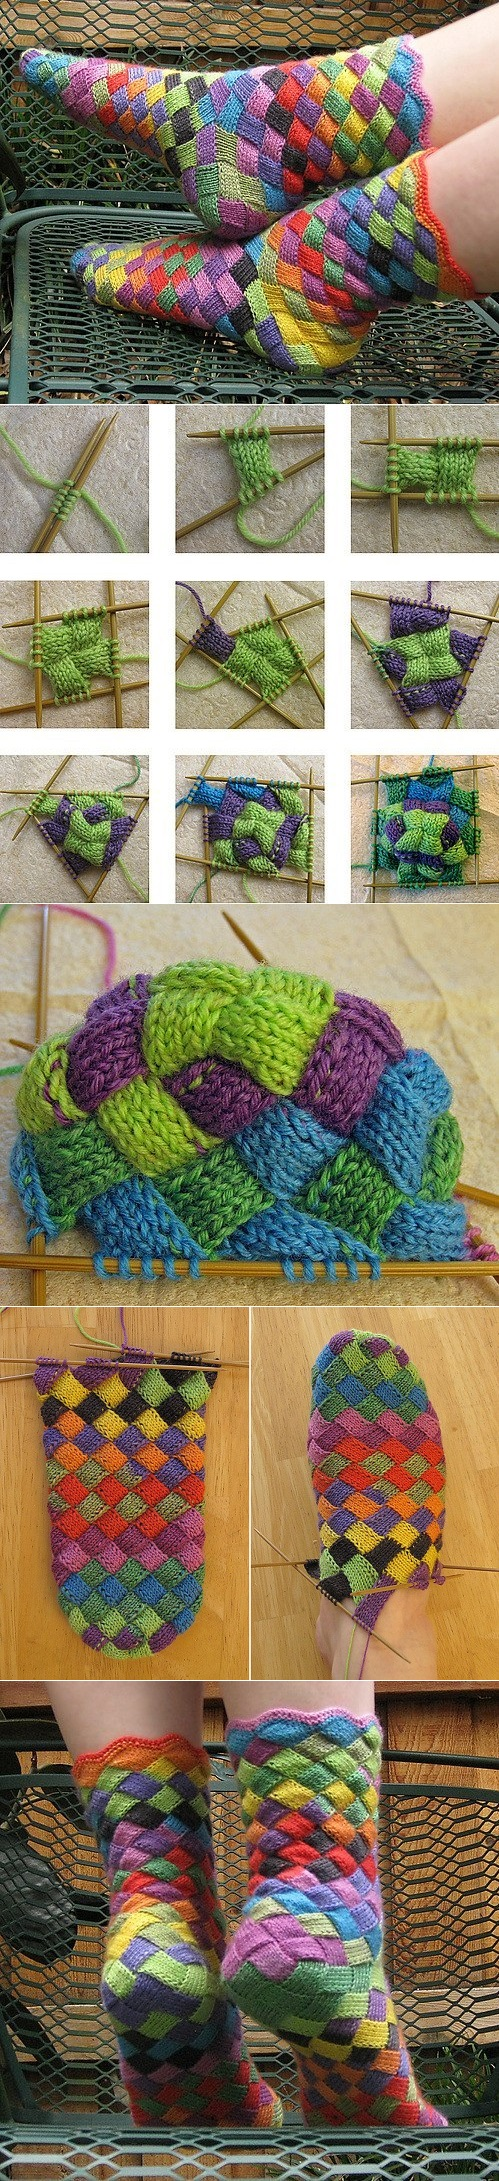 Rainbow Patch Knitted Socks Idea - DIY